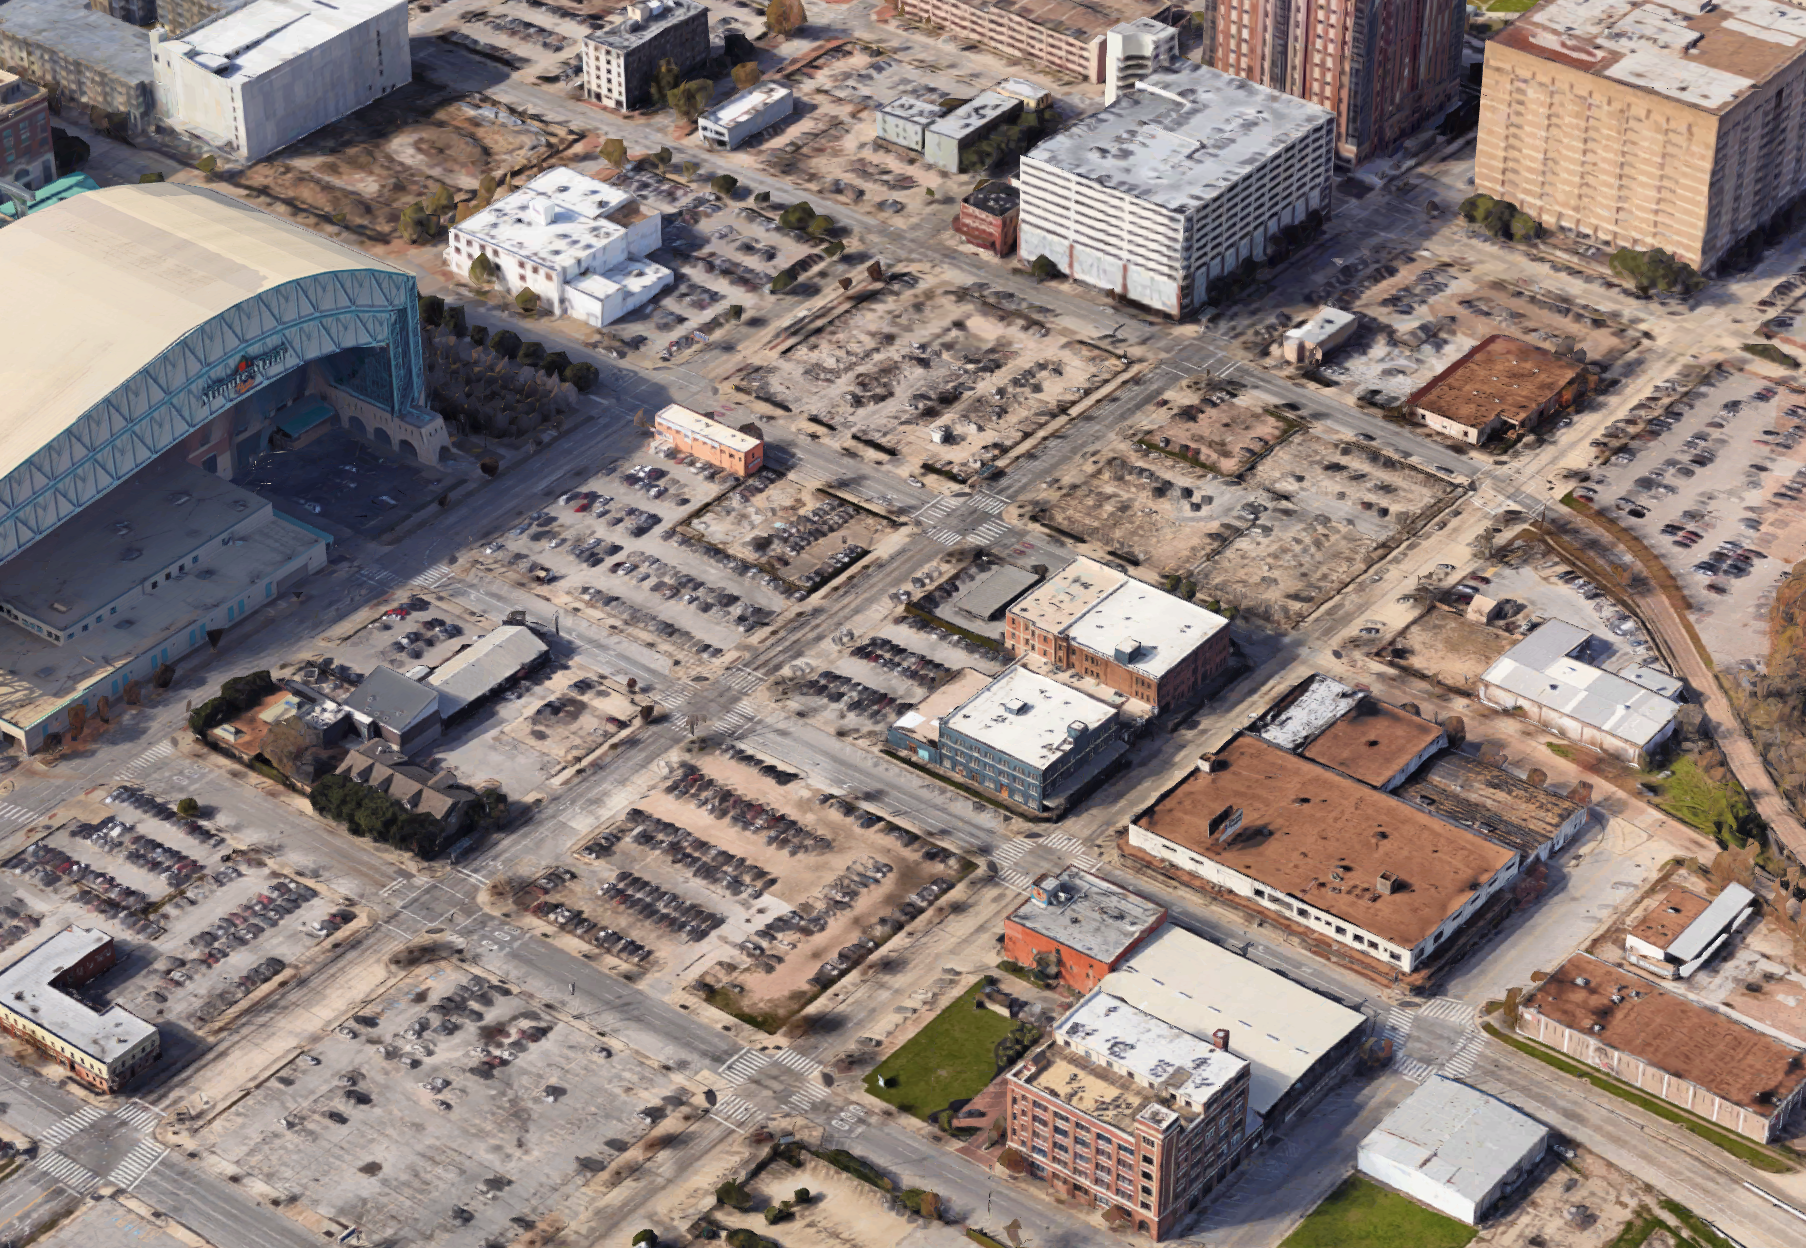 A parking desert outside of the Minute Maid Park.